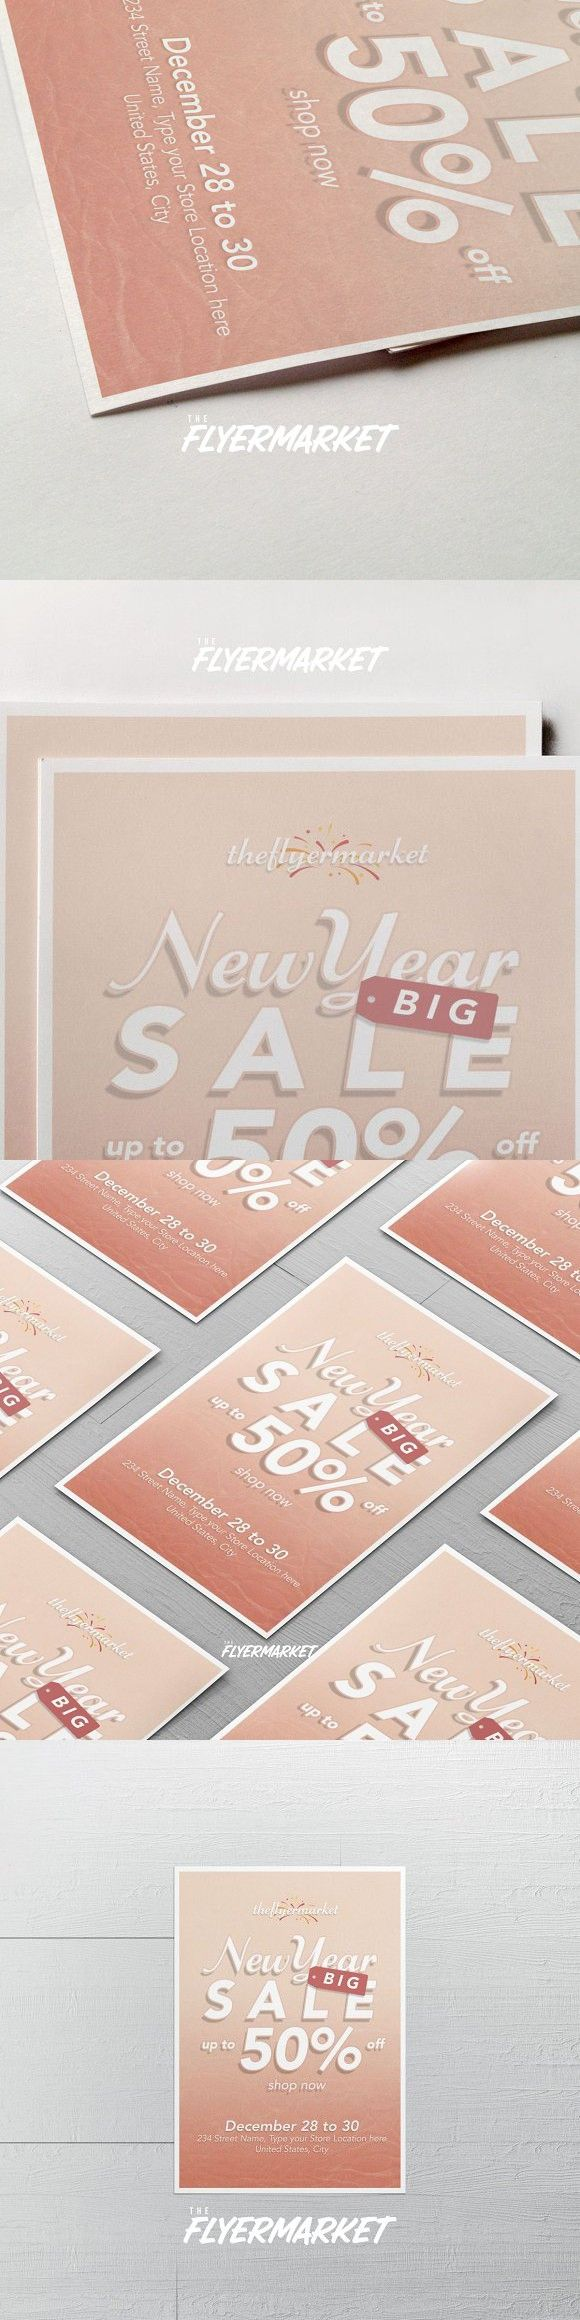 New Year Sales Flyer Template